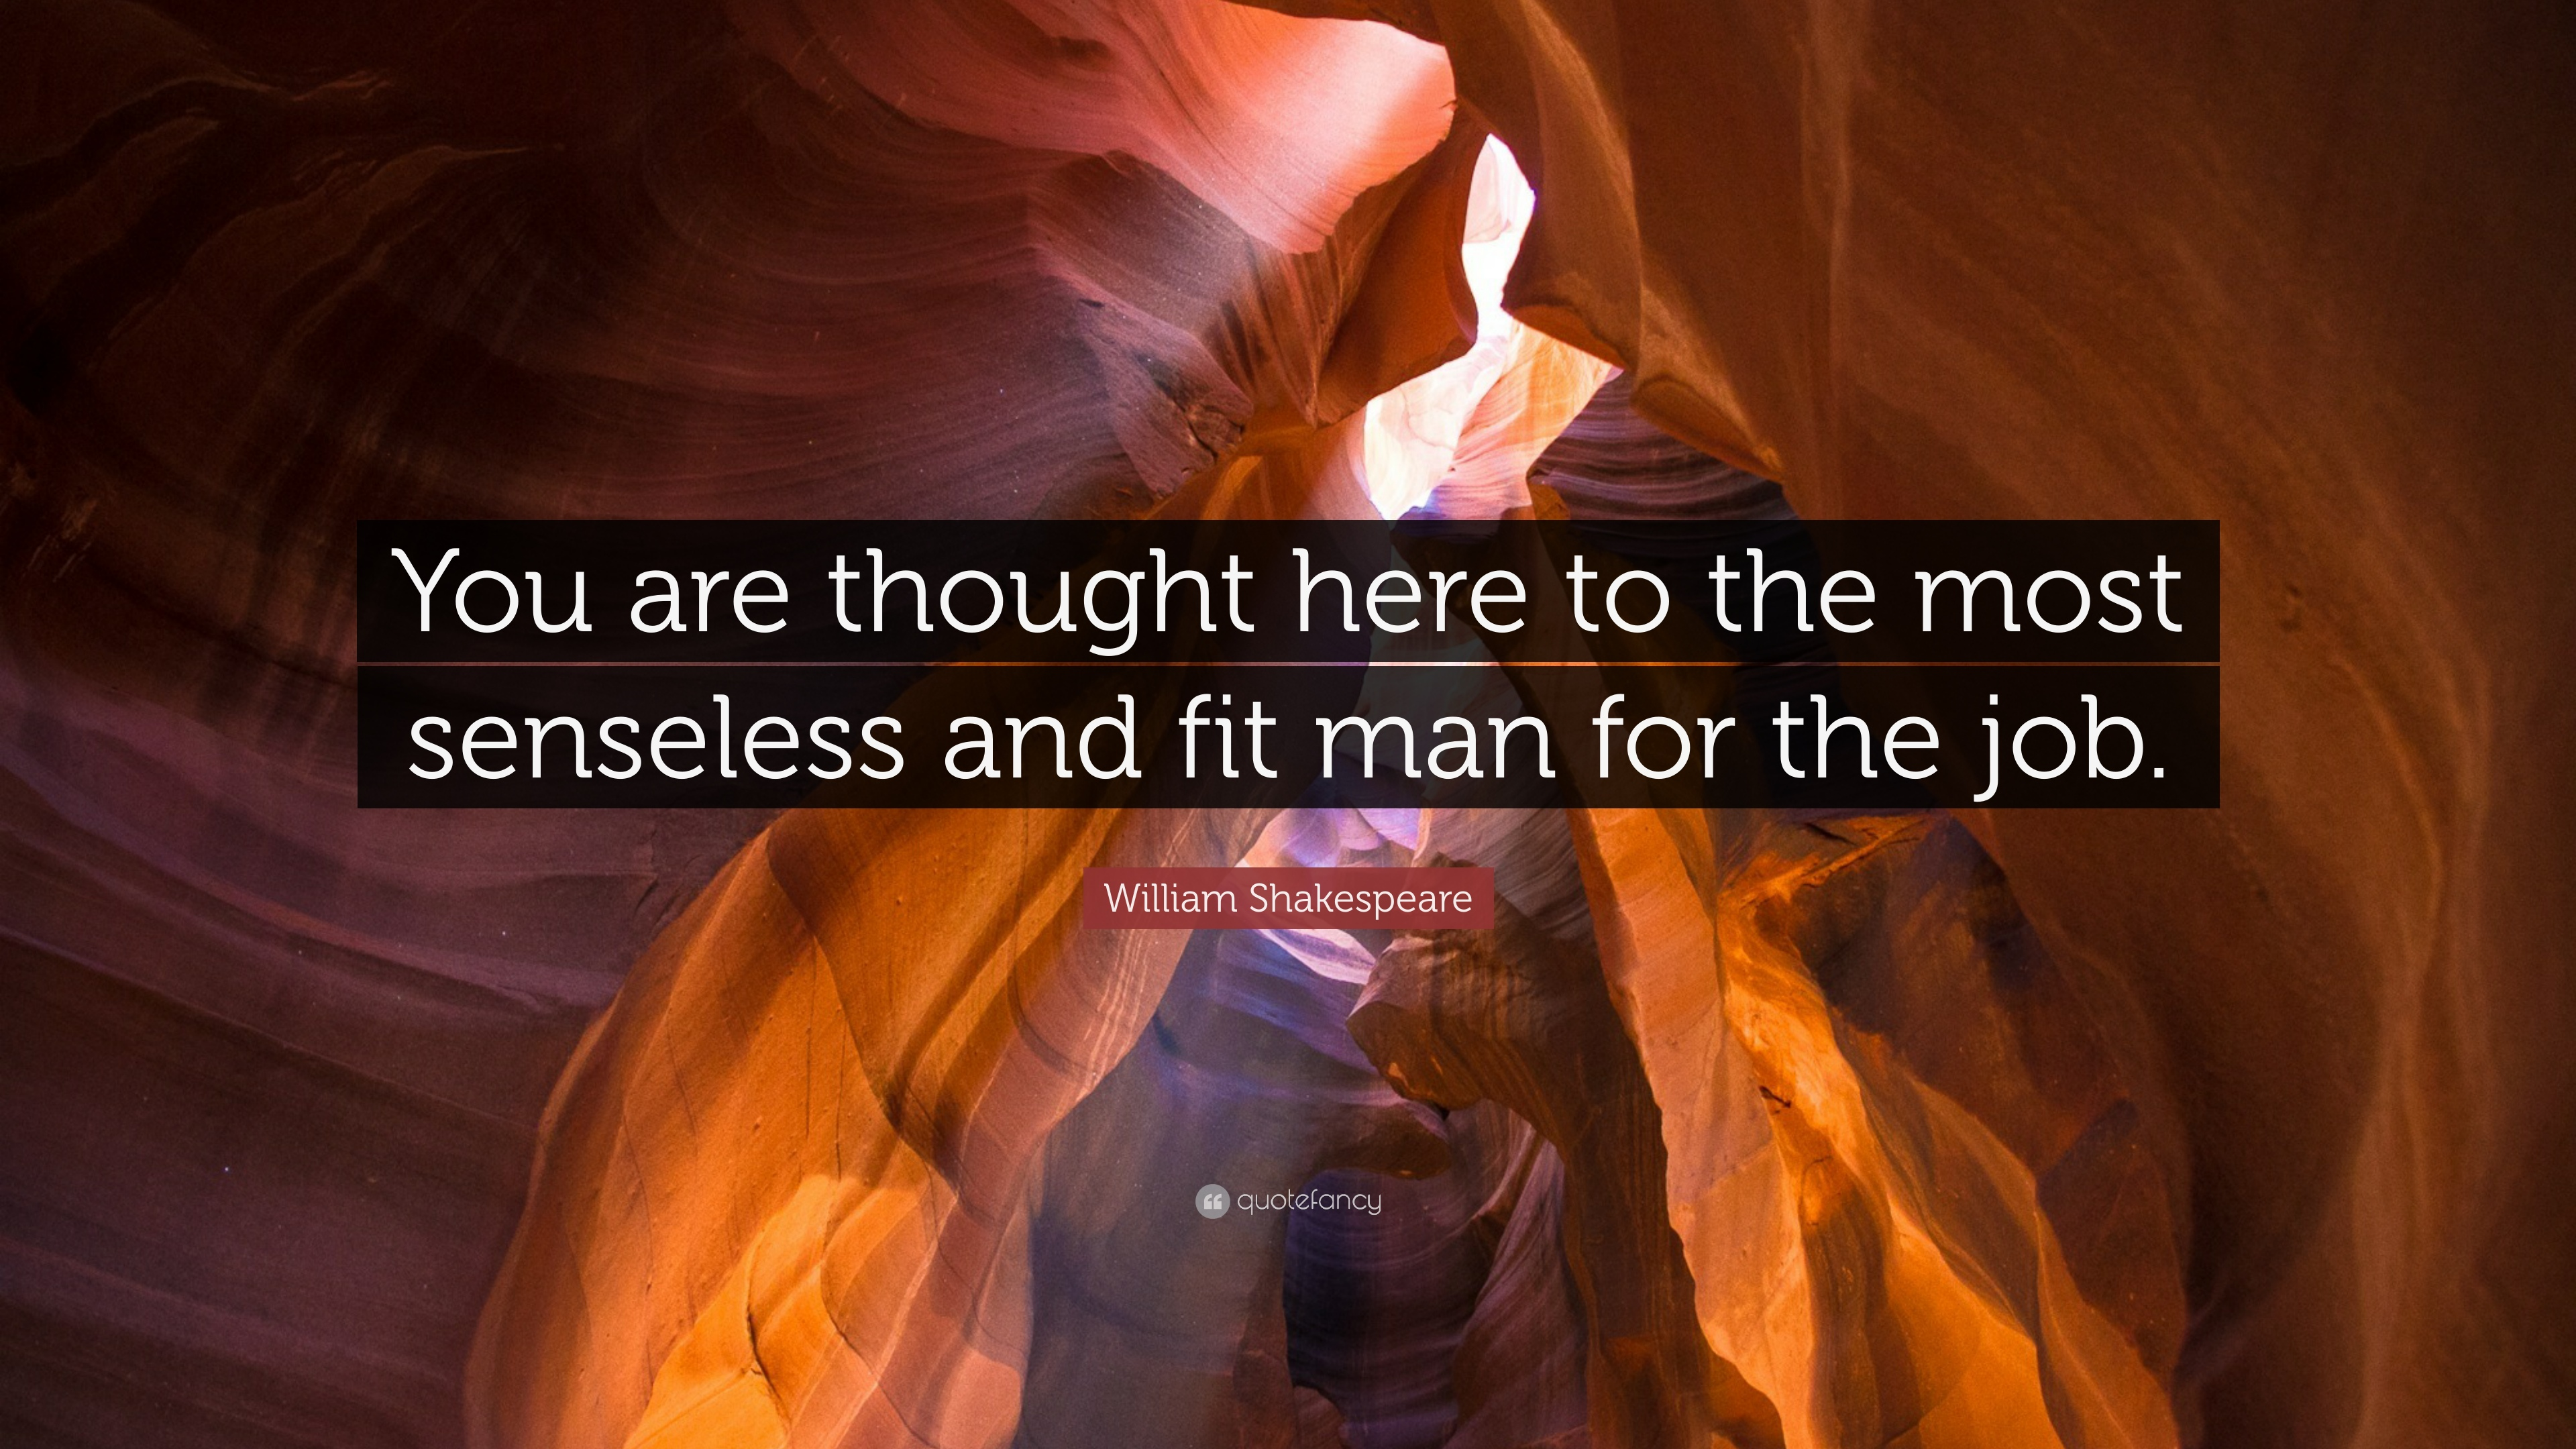 william shakespeare quote you are thought here to the most william shakespeare quote you are thought here to the most senseless and fit man